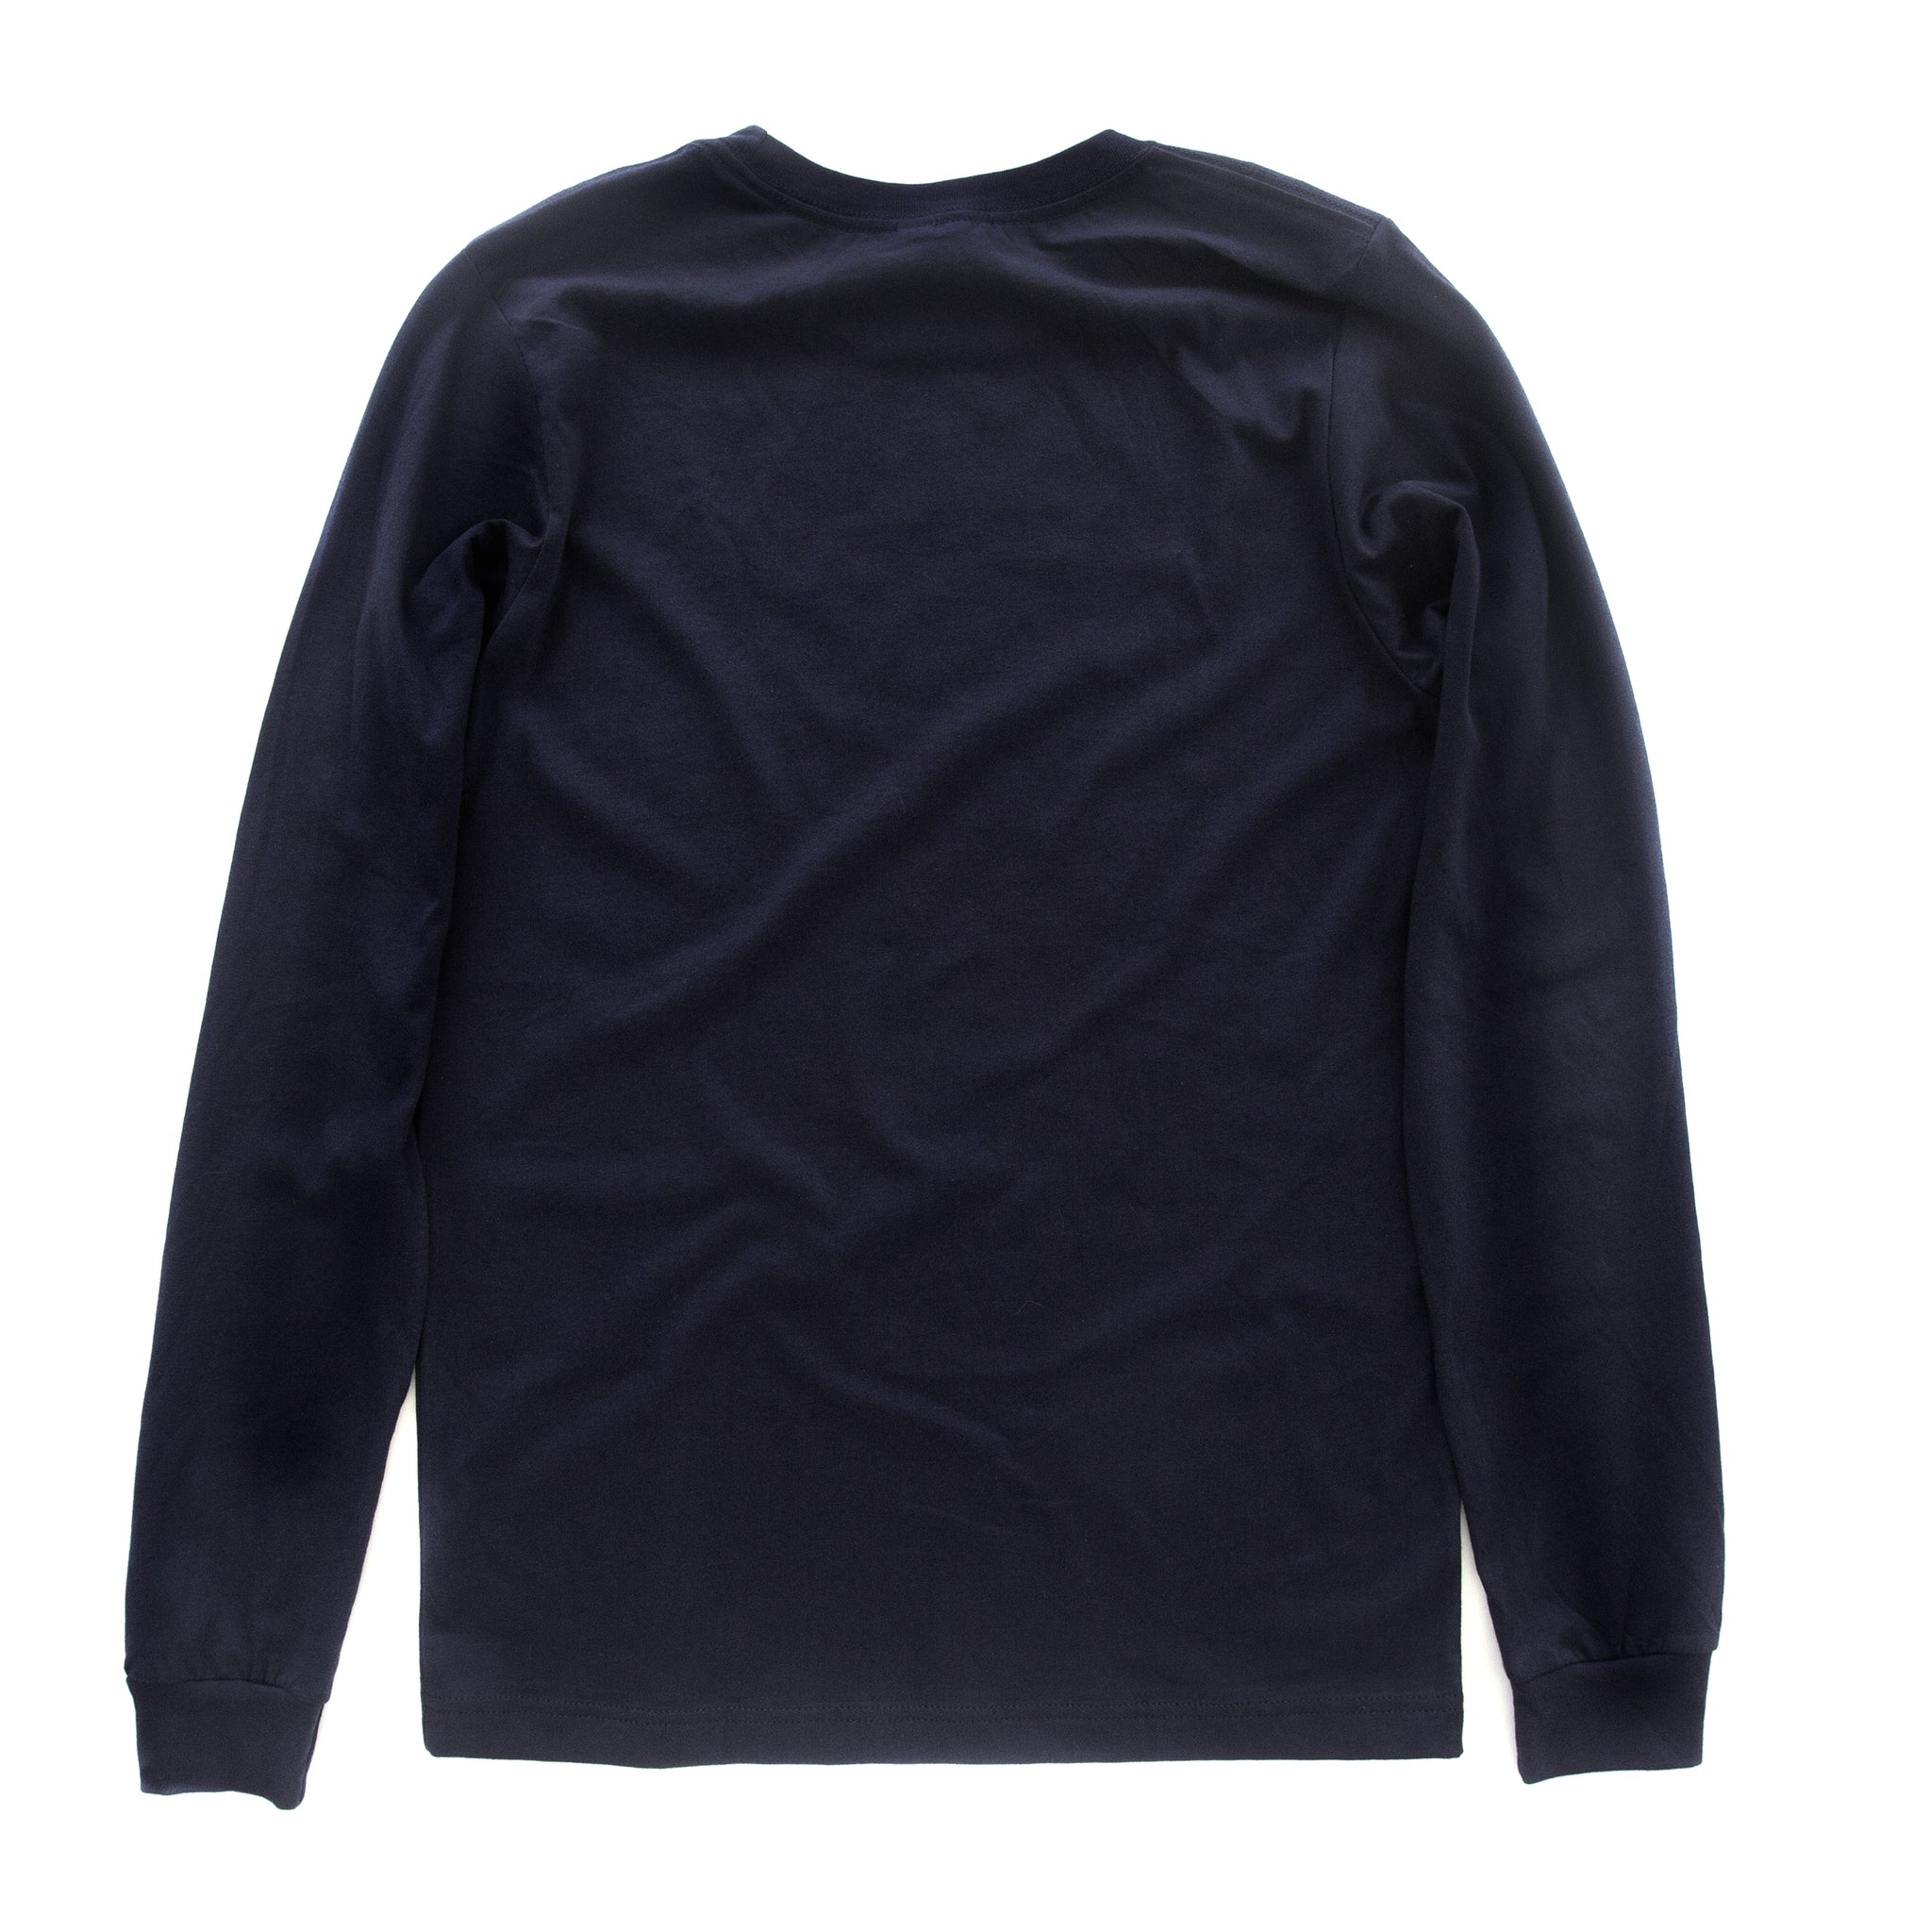 Back view of navy long-sleeved t-shirt